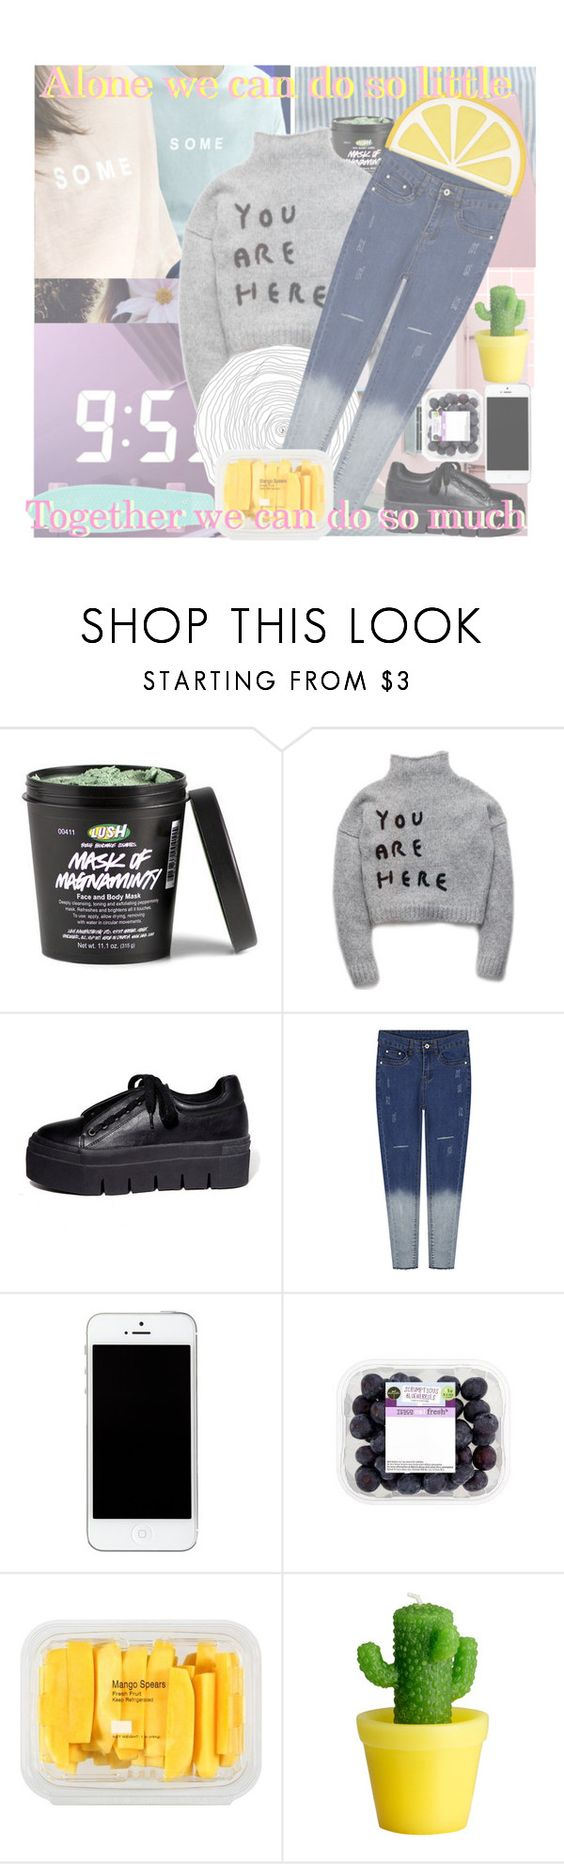 """""""♫What's wrong with being Confident♫"""" by brigette002 ❤ liked on Polyvore featuring Mancienne, Chicnova Fashion, MANGO, H&M and Monki"""